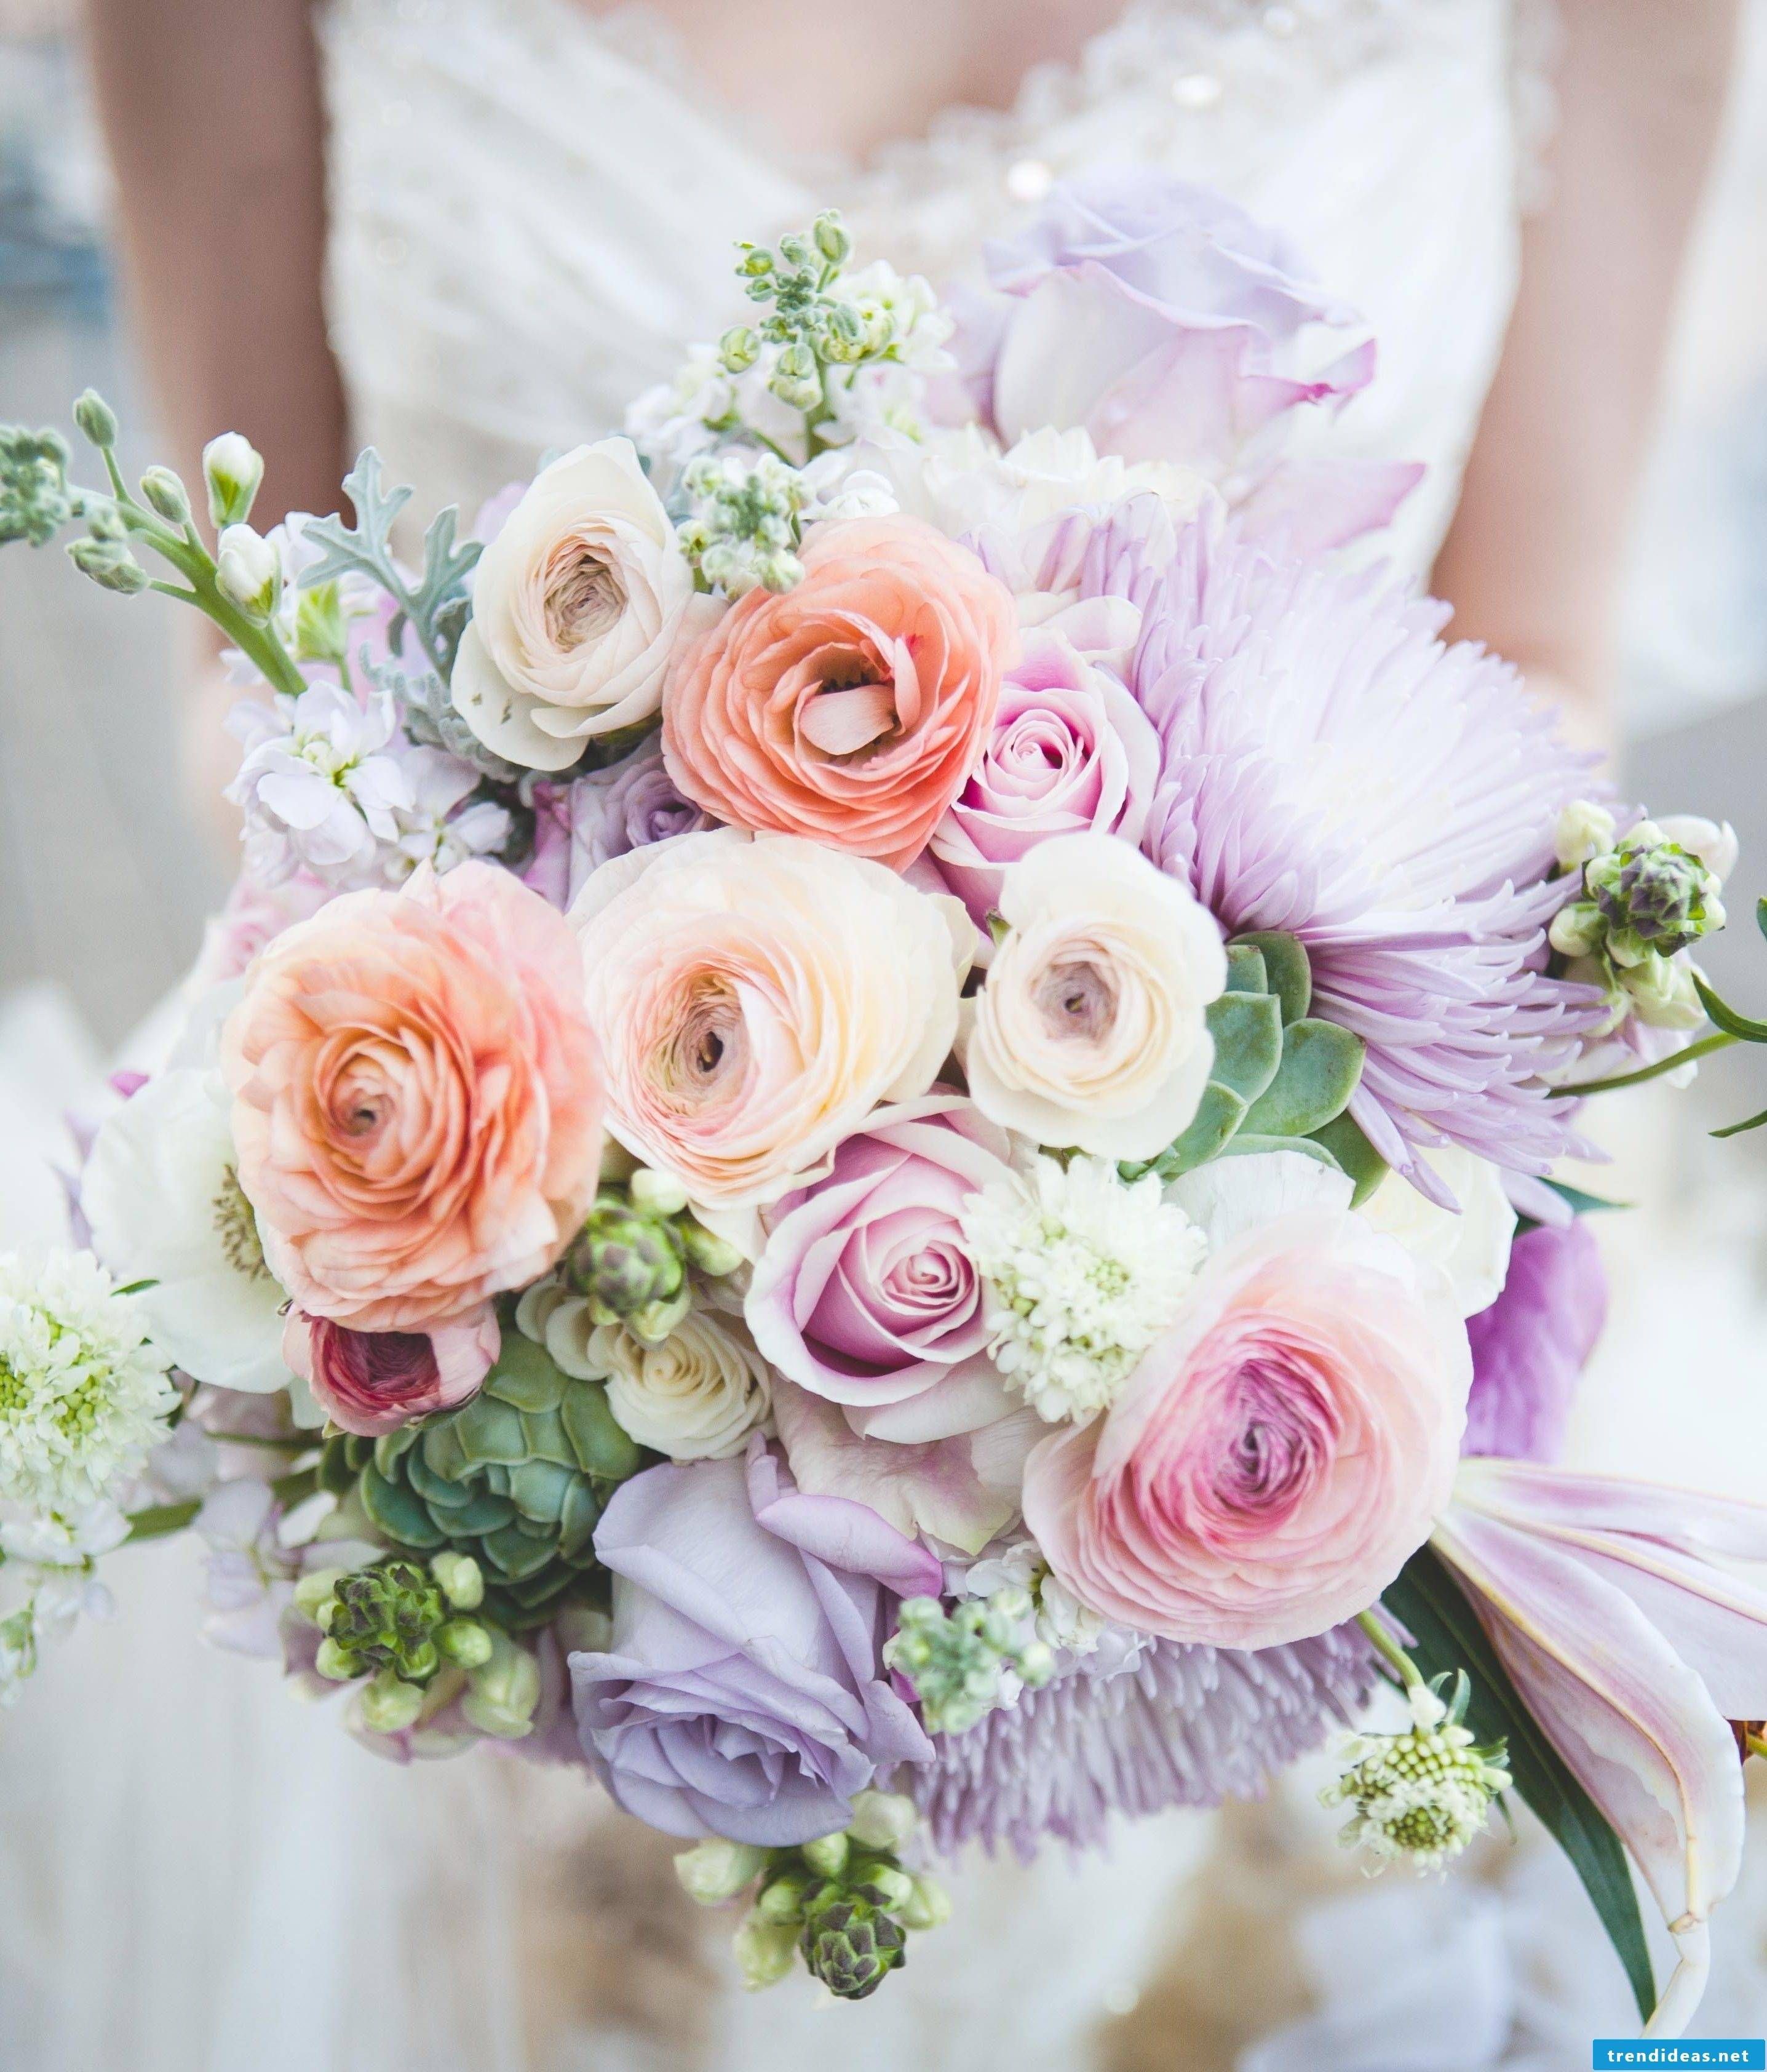 The bridal bouquet of your dreams is in pastel colors